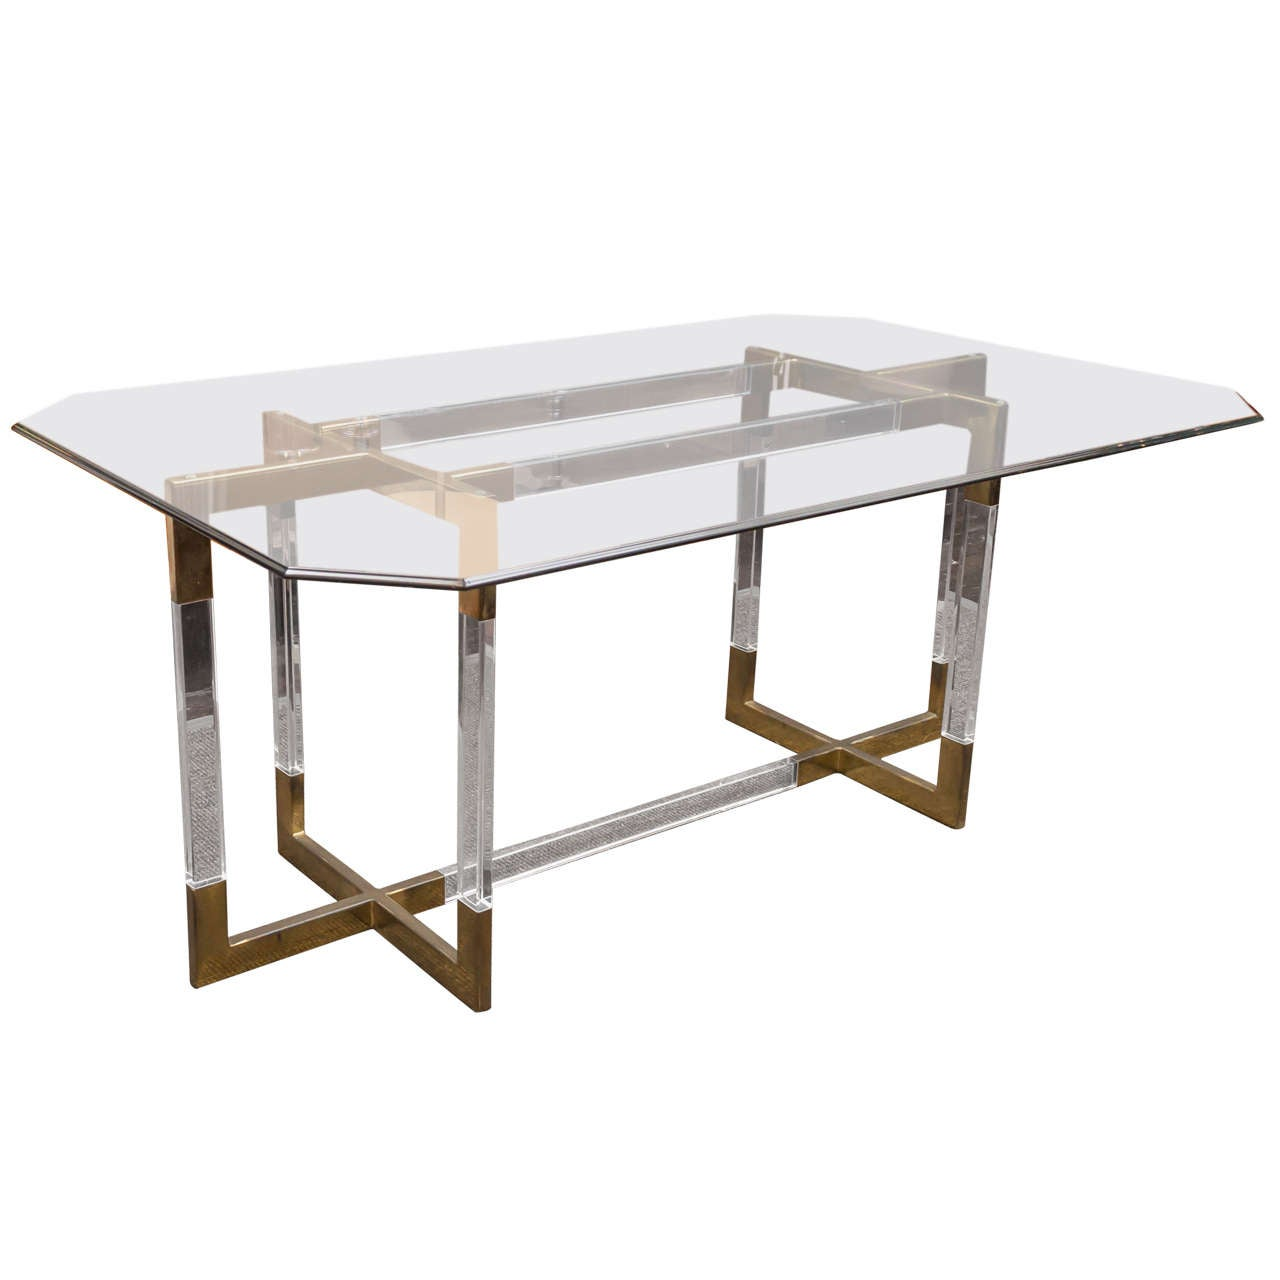 "Lucite Dining Room Table: Charles Hollis Jones ""Metric Line"" Lucite Dining Table At"